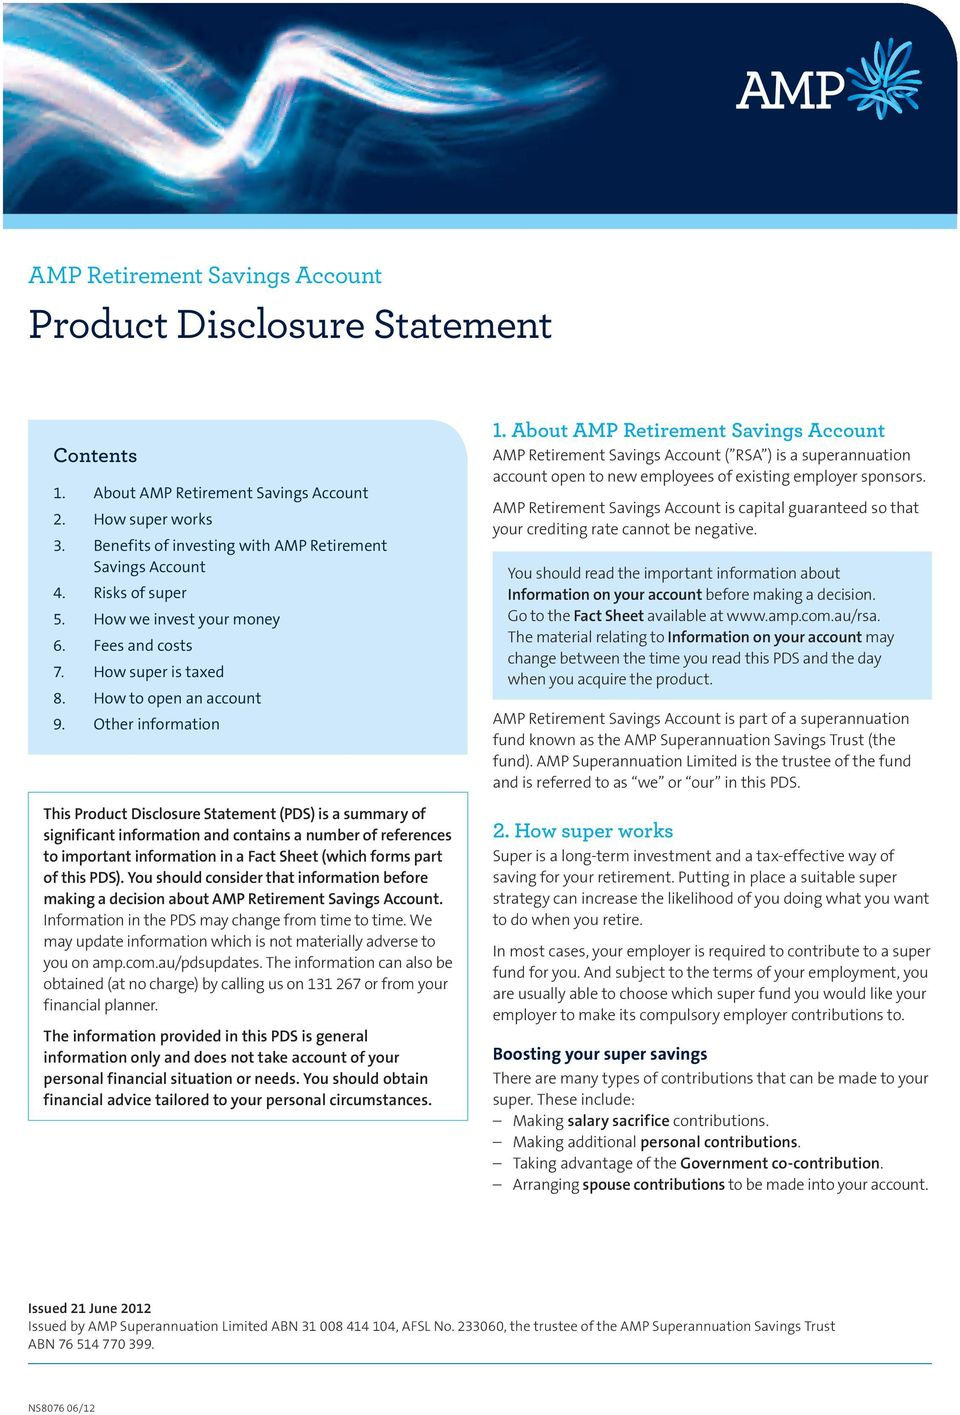 Other information This Product Disclosure Statement (PDS) is a summary of significant information and contains a number of references to important information in a Fact Sheet (which forms part of